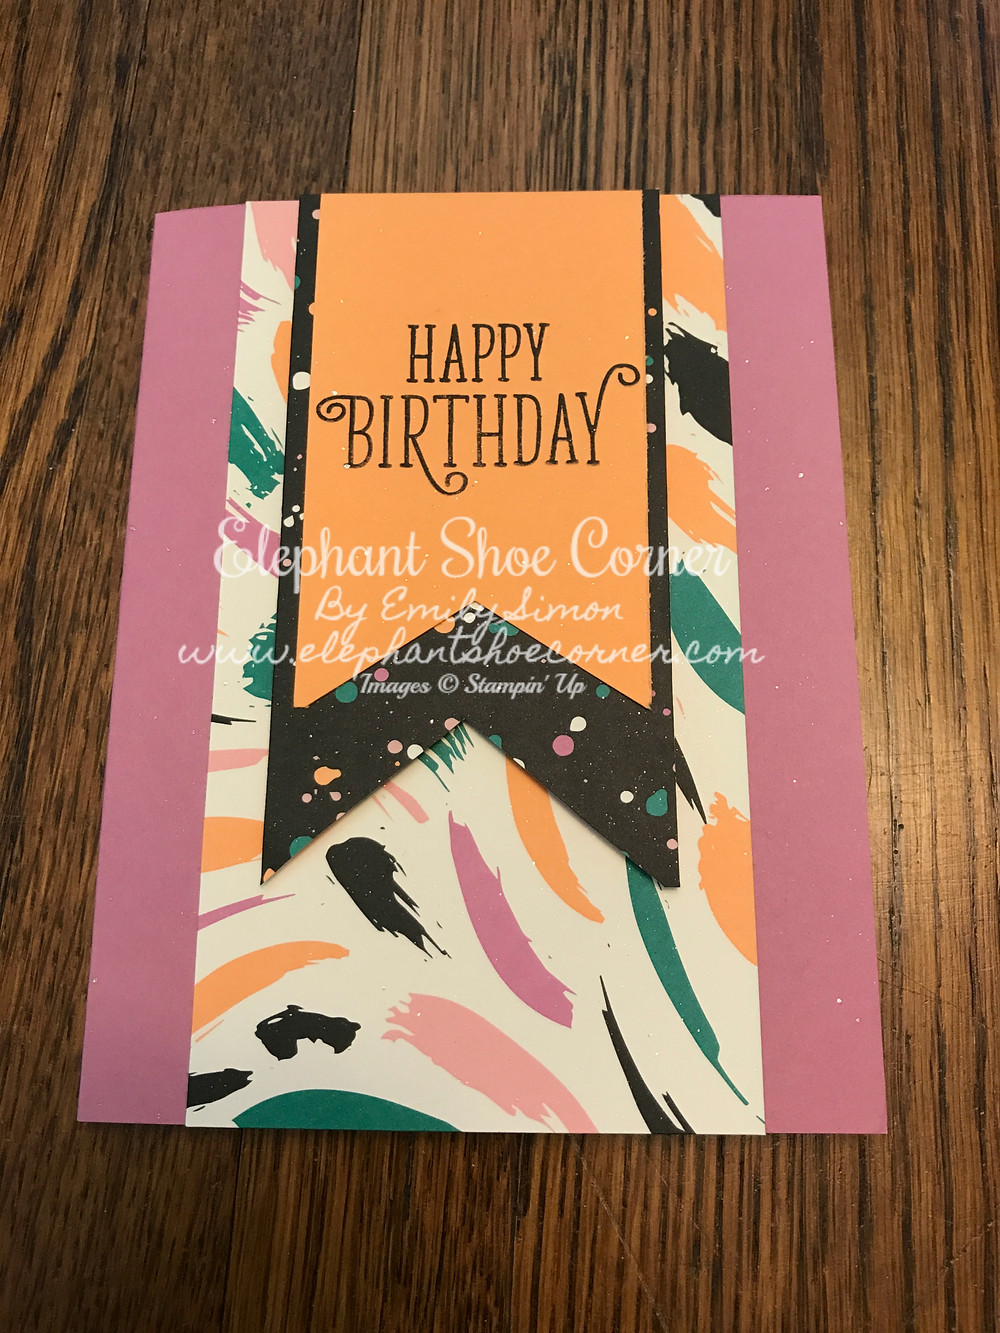 This cards was made using Sweet Sugarplum, Peekaboo Peach and two different designs from the Playful Palette DSP.